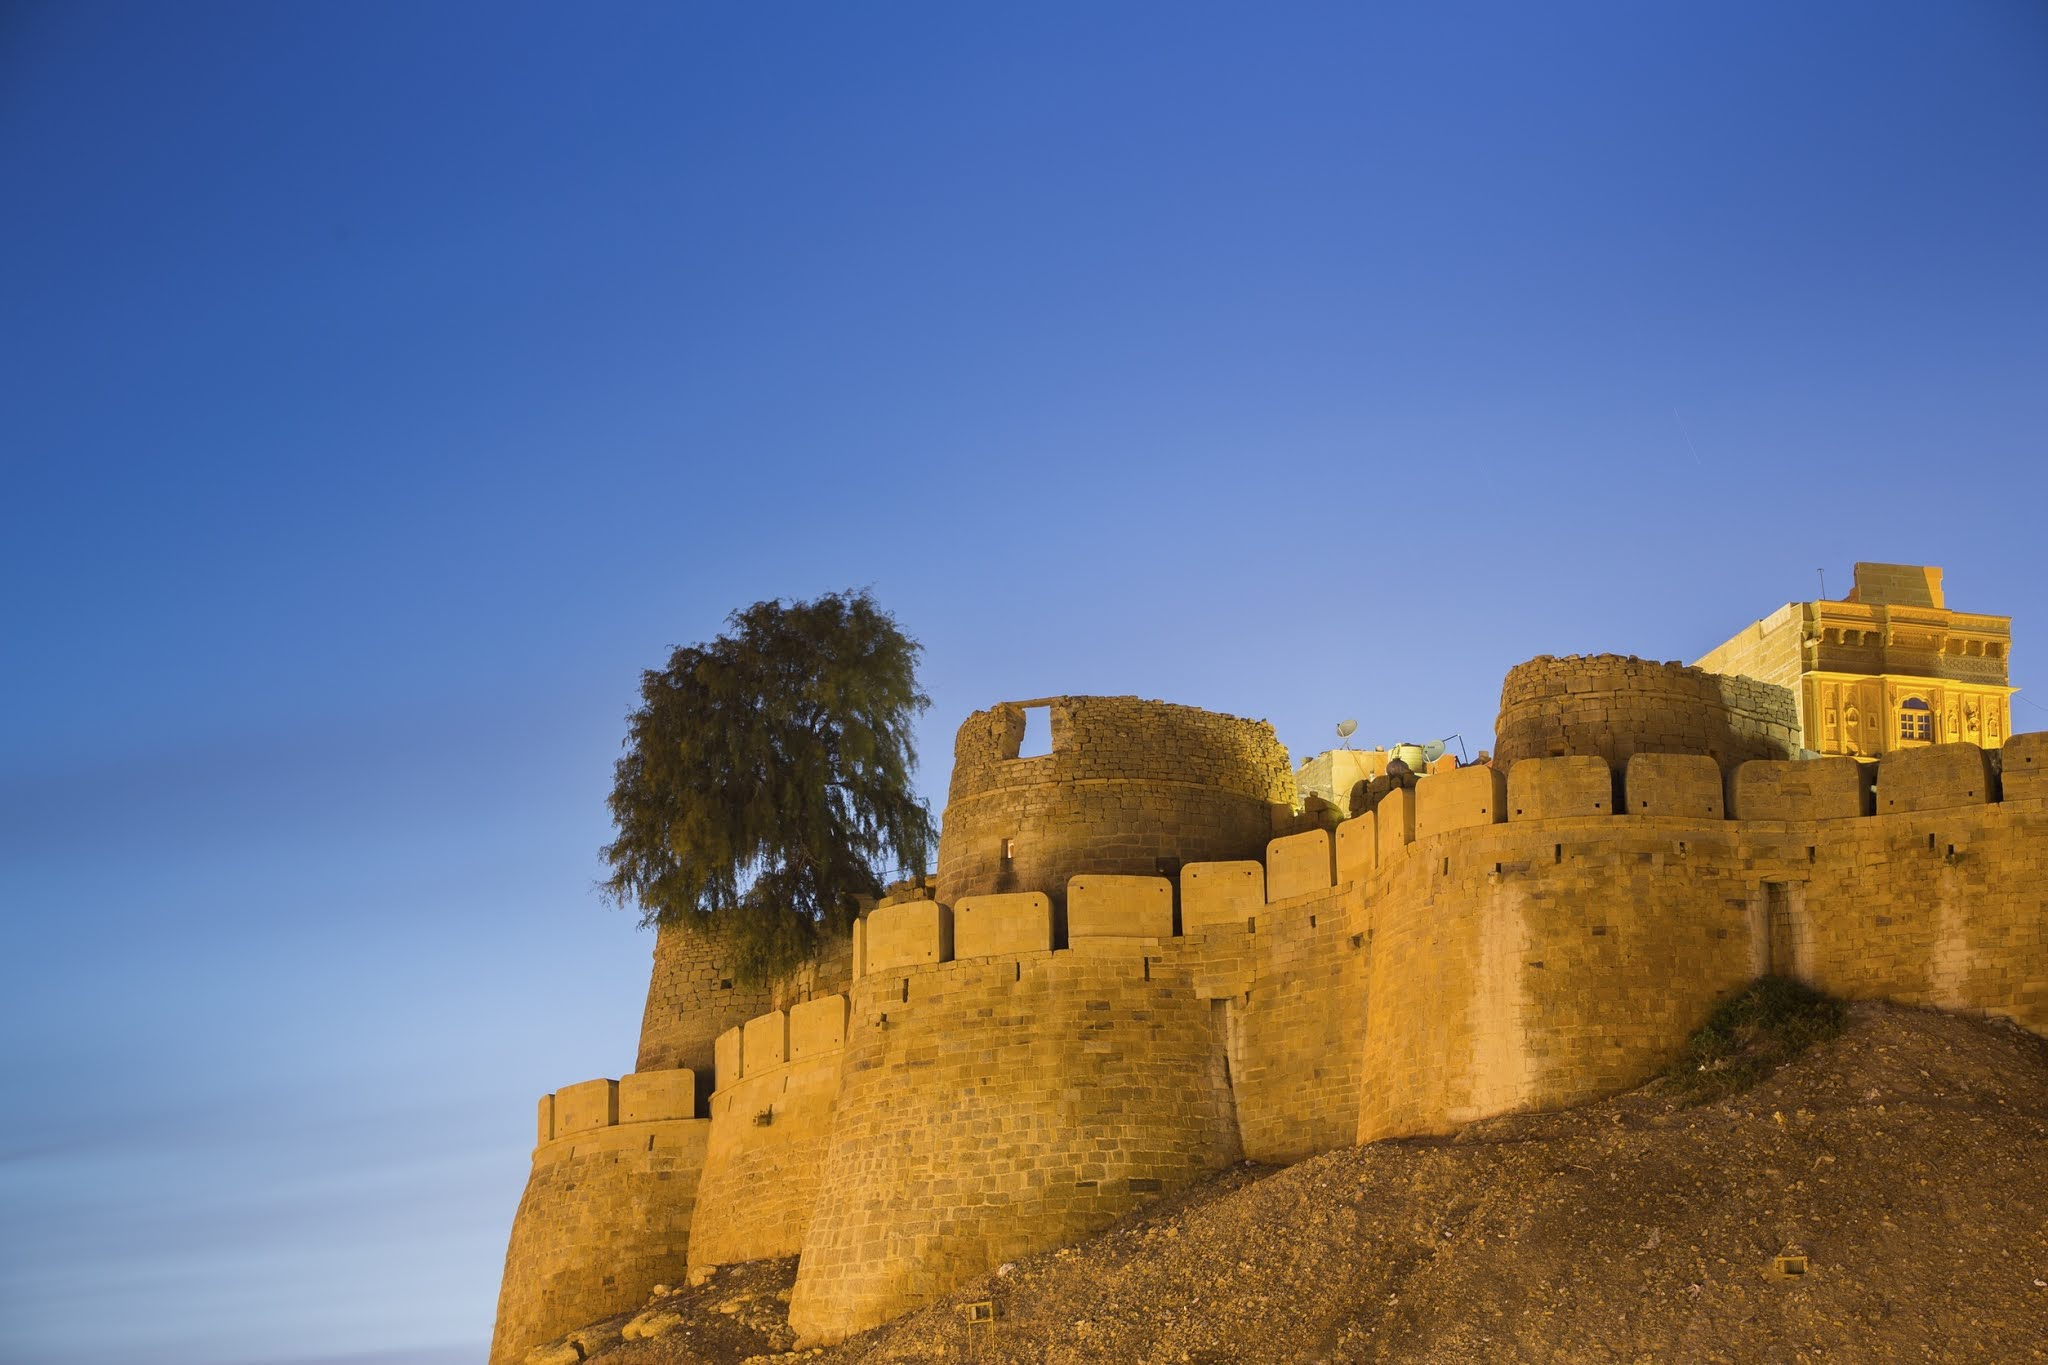 Jaisalmer-Fort-Rajasthan-Best-time-&-tips-Hotel-Tour-Planner-History